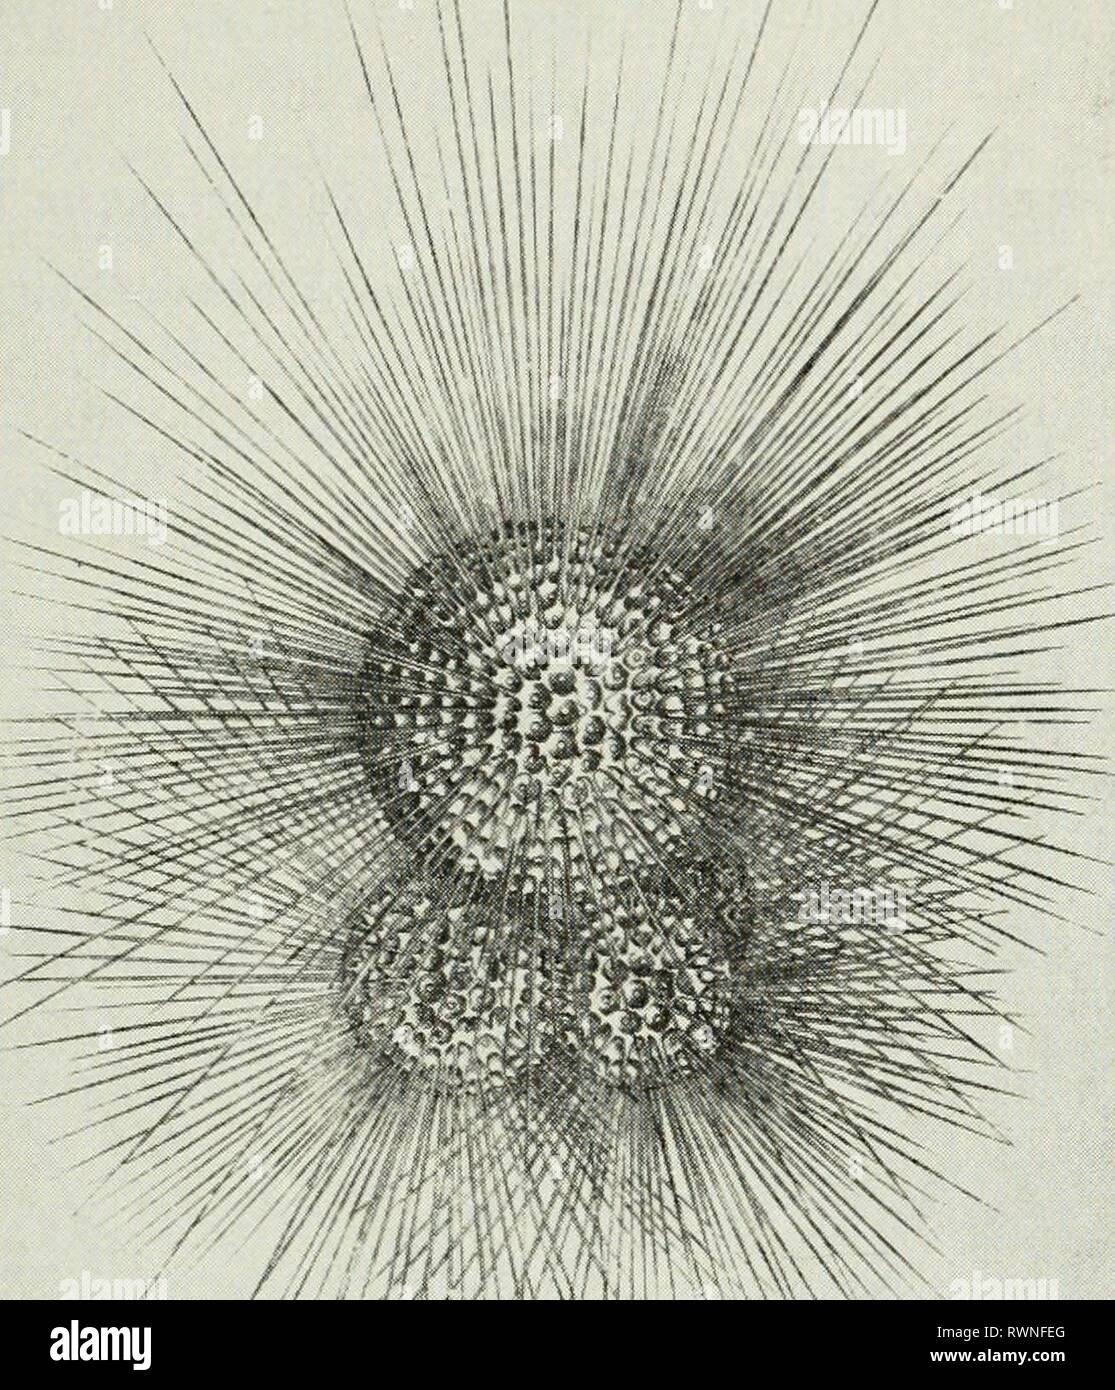 Elements of ecology (1954) Elements of ecology elementsofecolog00clar Year: 1954  Existence of Plankton 39    Murray and Hjort, 1911, copyright Macmillan & Co. Fig. 2.7. Globigerina buUoides, a planktonic protozoan belonging to the order Foraminifera. The largest sphere of the shell is about 0.5 mm in diameter. TABLE 1 Comparison of Sinking Rates of Three Types of Plankton Organisms WITH Those of Spherical Sand and Silt Particles Length or Diameter Sinking Rate (millimeters) (meters per day) Sand grain 1.0 8600. Copepod {Calarms) 3.0 576. Silt particle 0,01 14 5 Diatom {NUzschia) 0.0^>0 0.0 - Stock Image